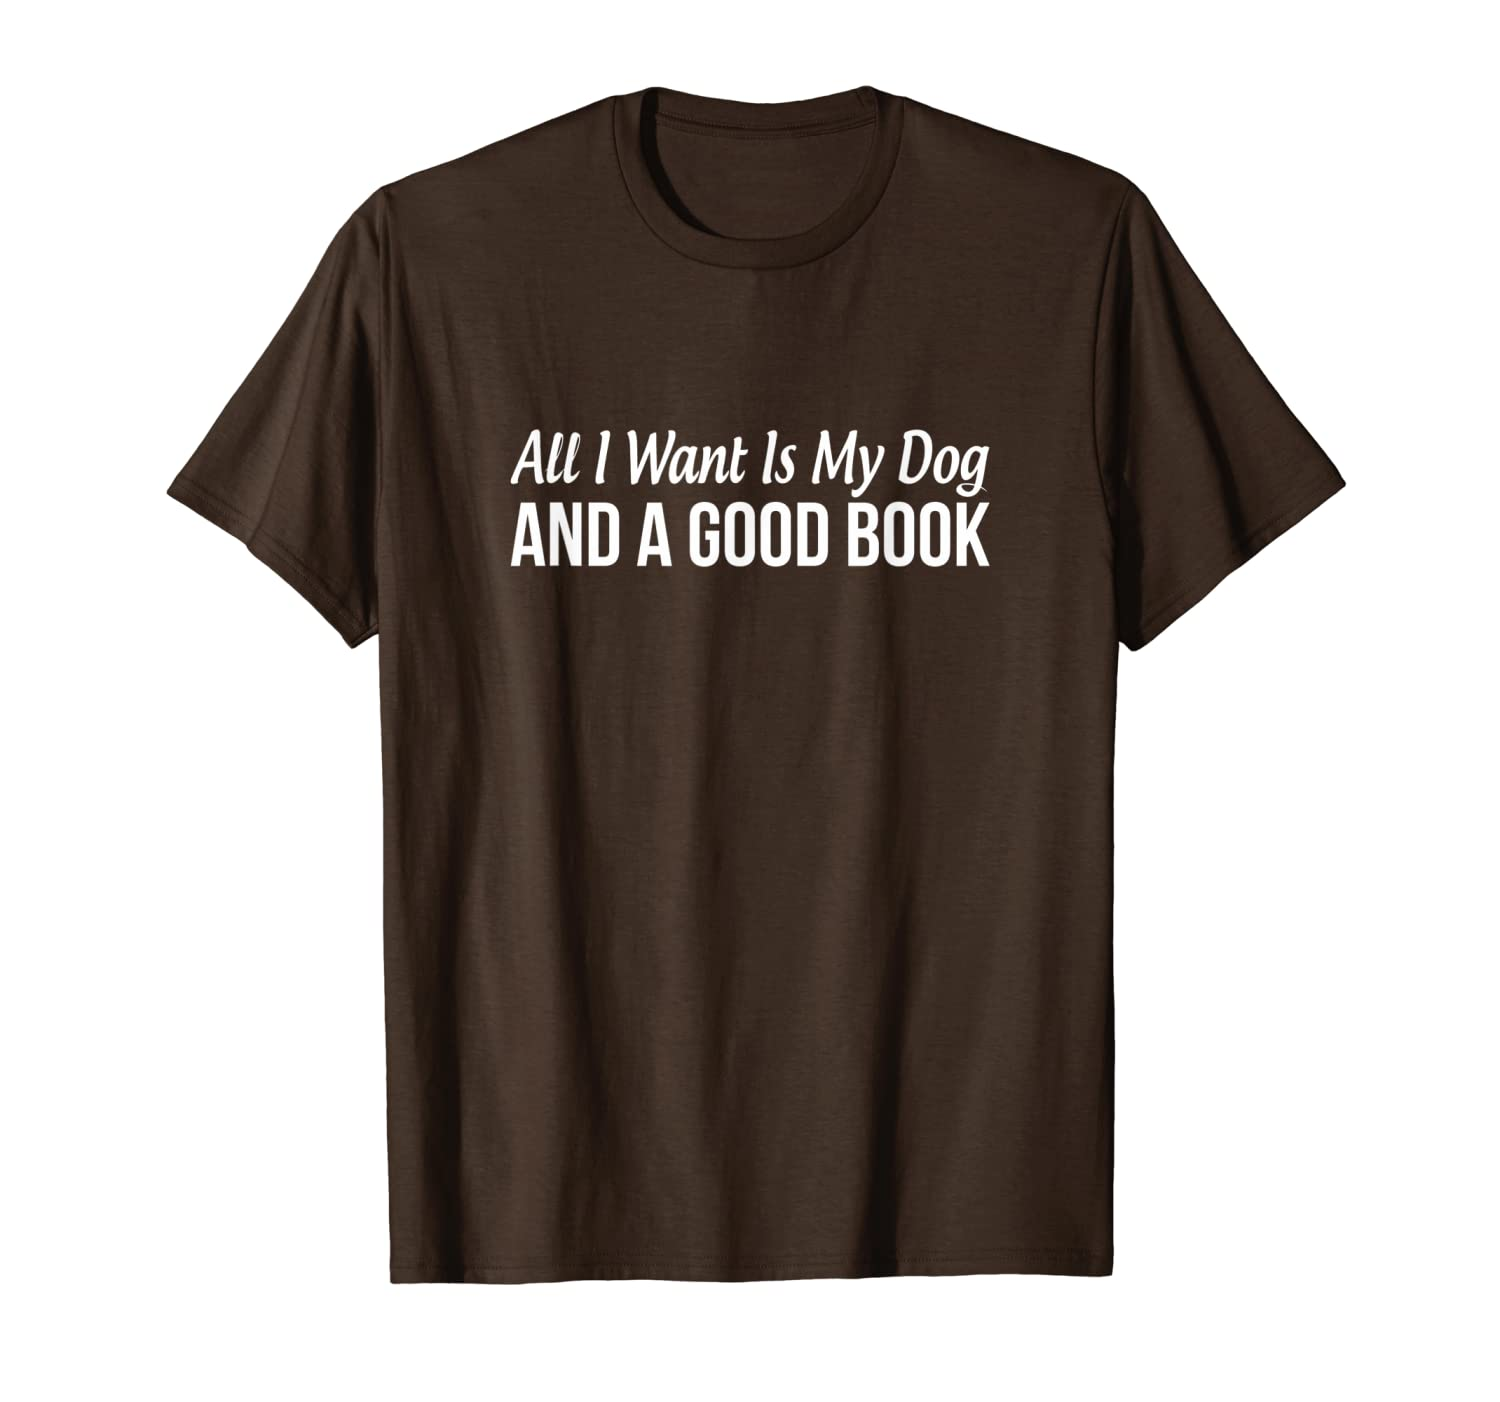 All I Want Is My Dog And A Good Book - T-shirt - Dogs Shirt For Men Women